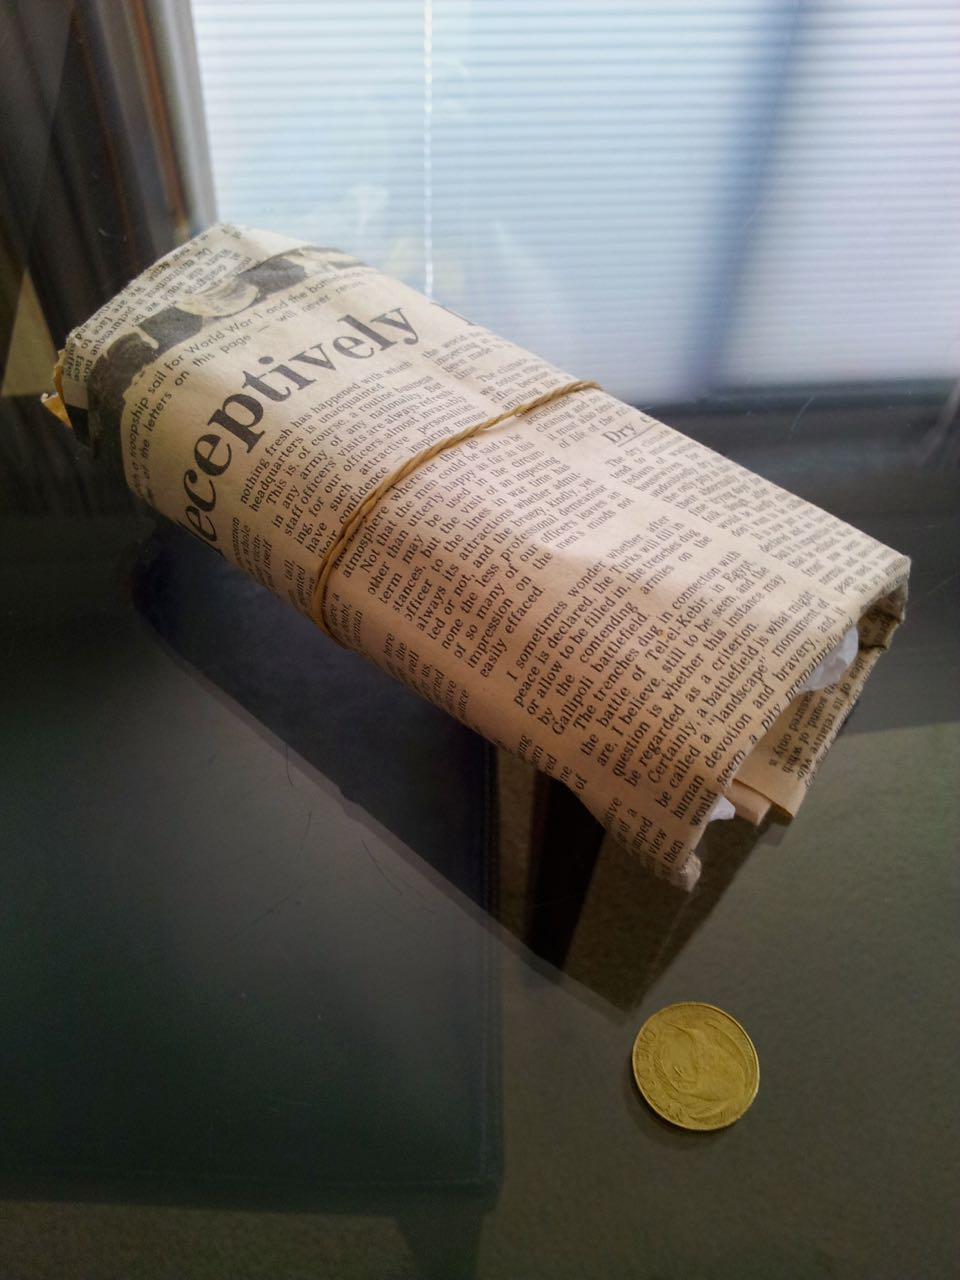 The camera wrapped in a newspaper talking about ...?. (looks like about cameras... can we get a scan of the newspaper?)